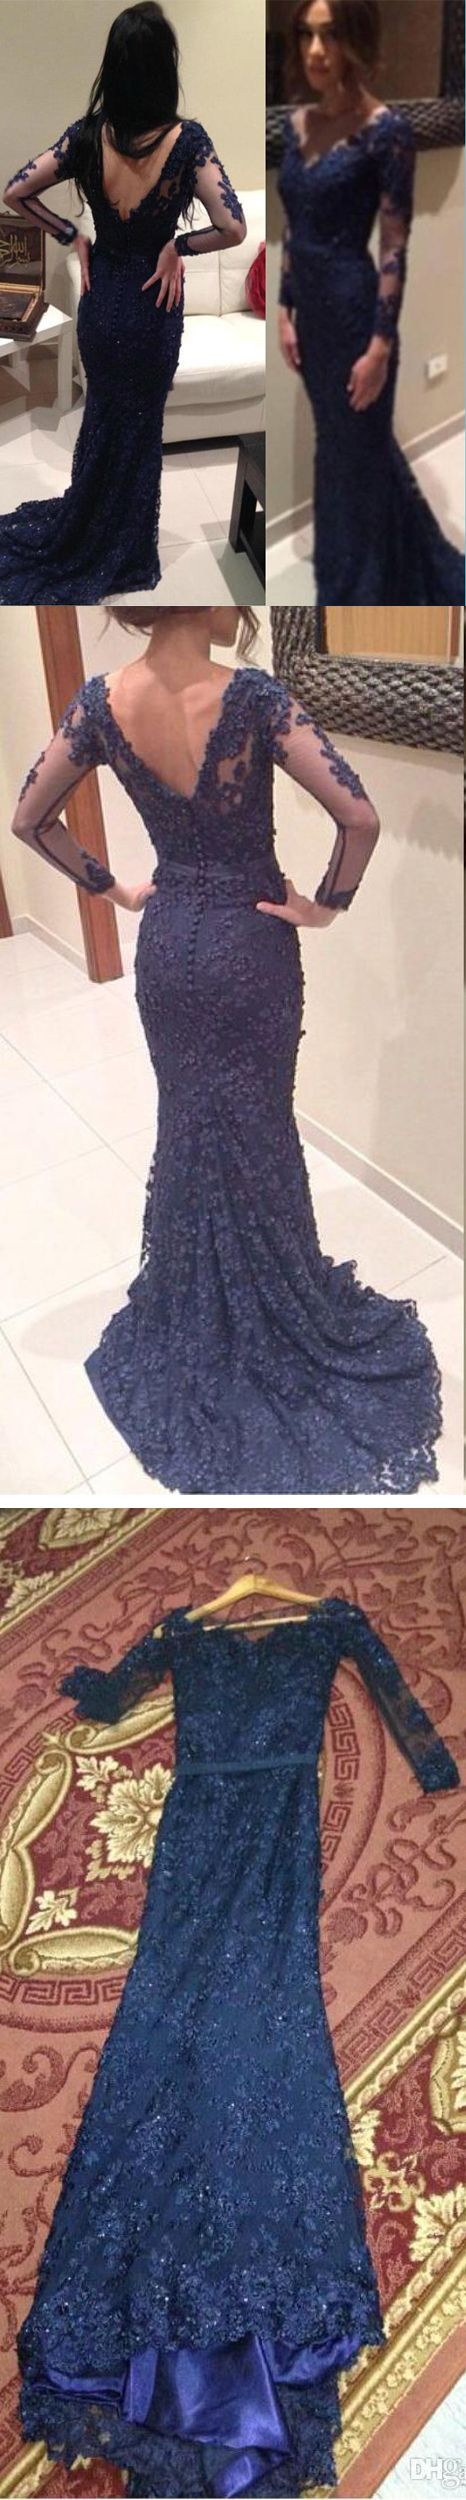 Illusion Navy Mermaid V Neck Long Sleeve Long Prom Dress With Embroidery #prom #evening #dress